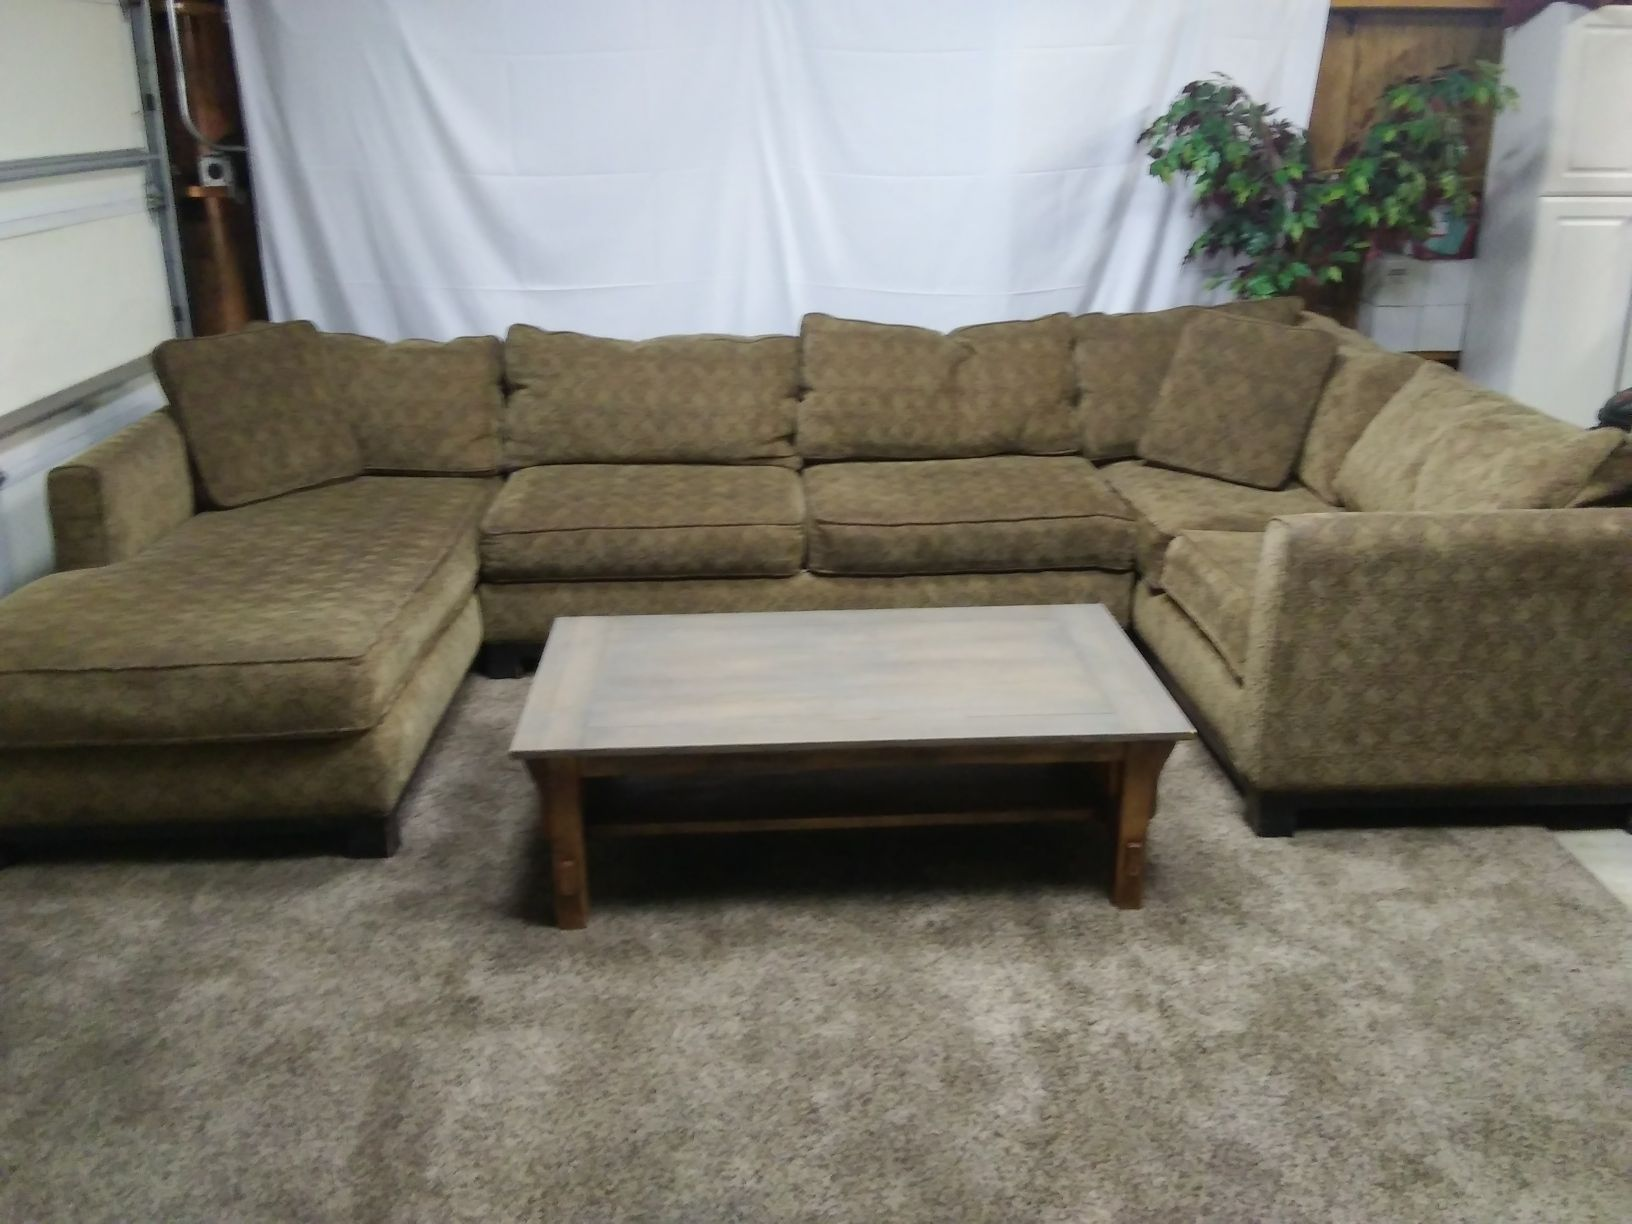 3 Piece Brown Chenille Sectional Sofa Set In Portland Oregon